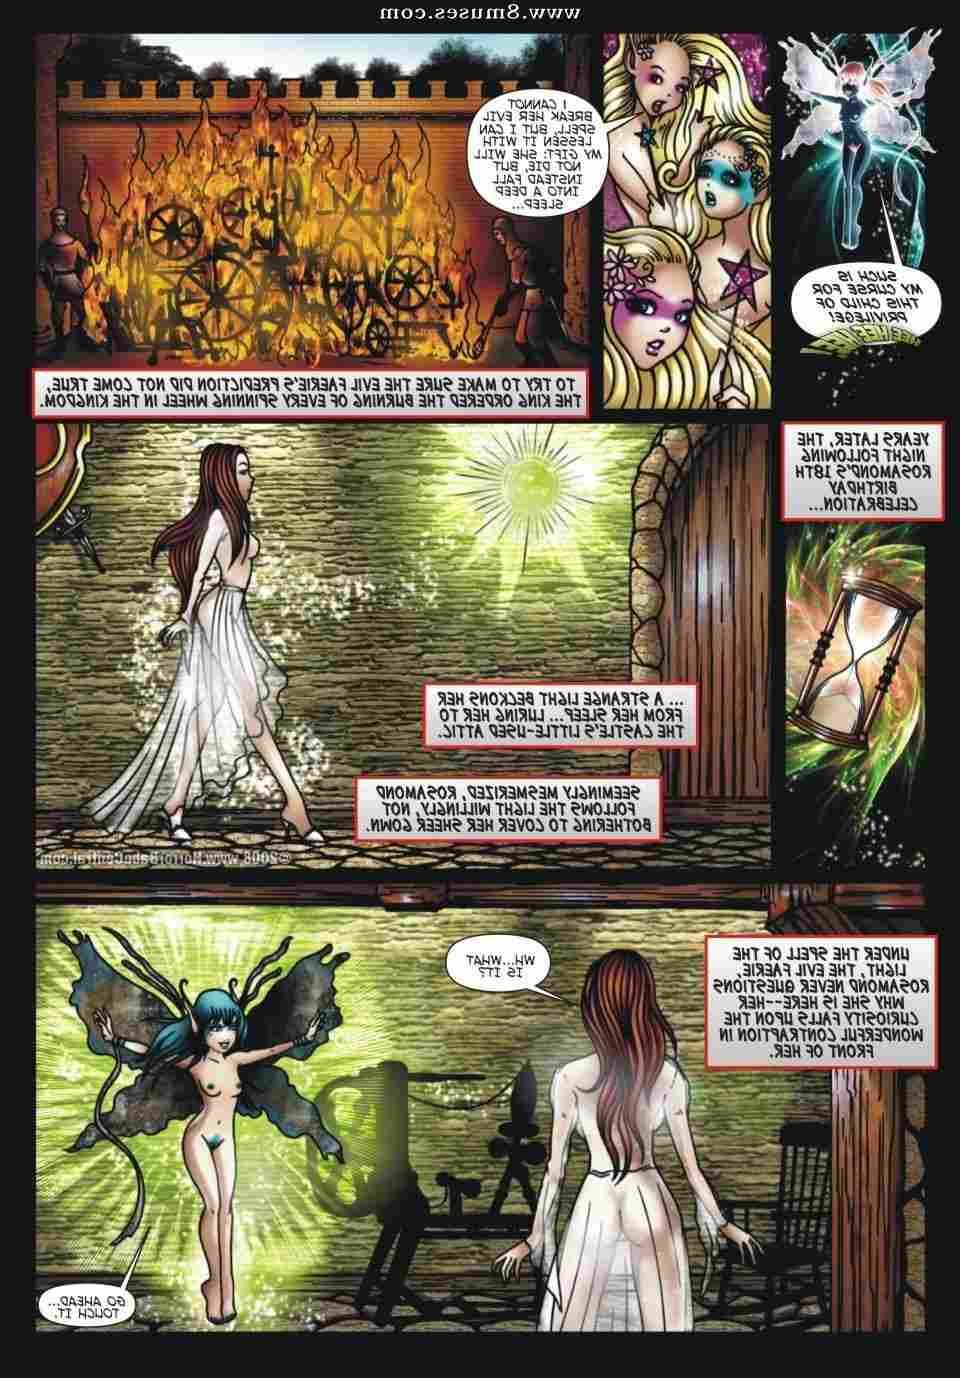 Central-Comics/Horror-Babe-Central/Fable-of-Fright Fable_of_Fright__8muses_-_Sex_and_Porn_Comics_62.jpg